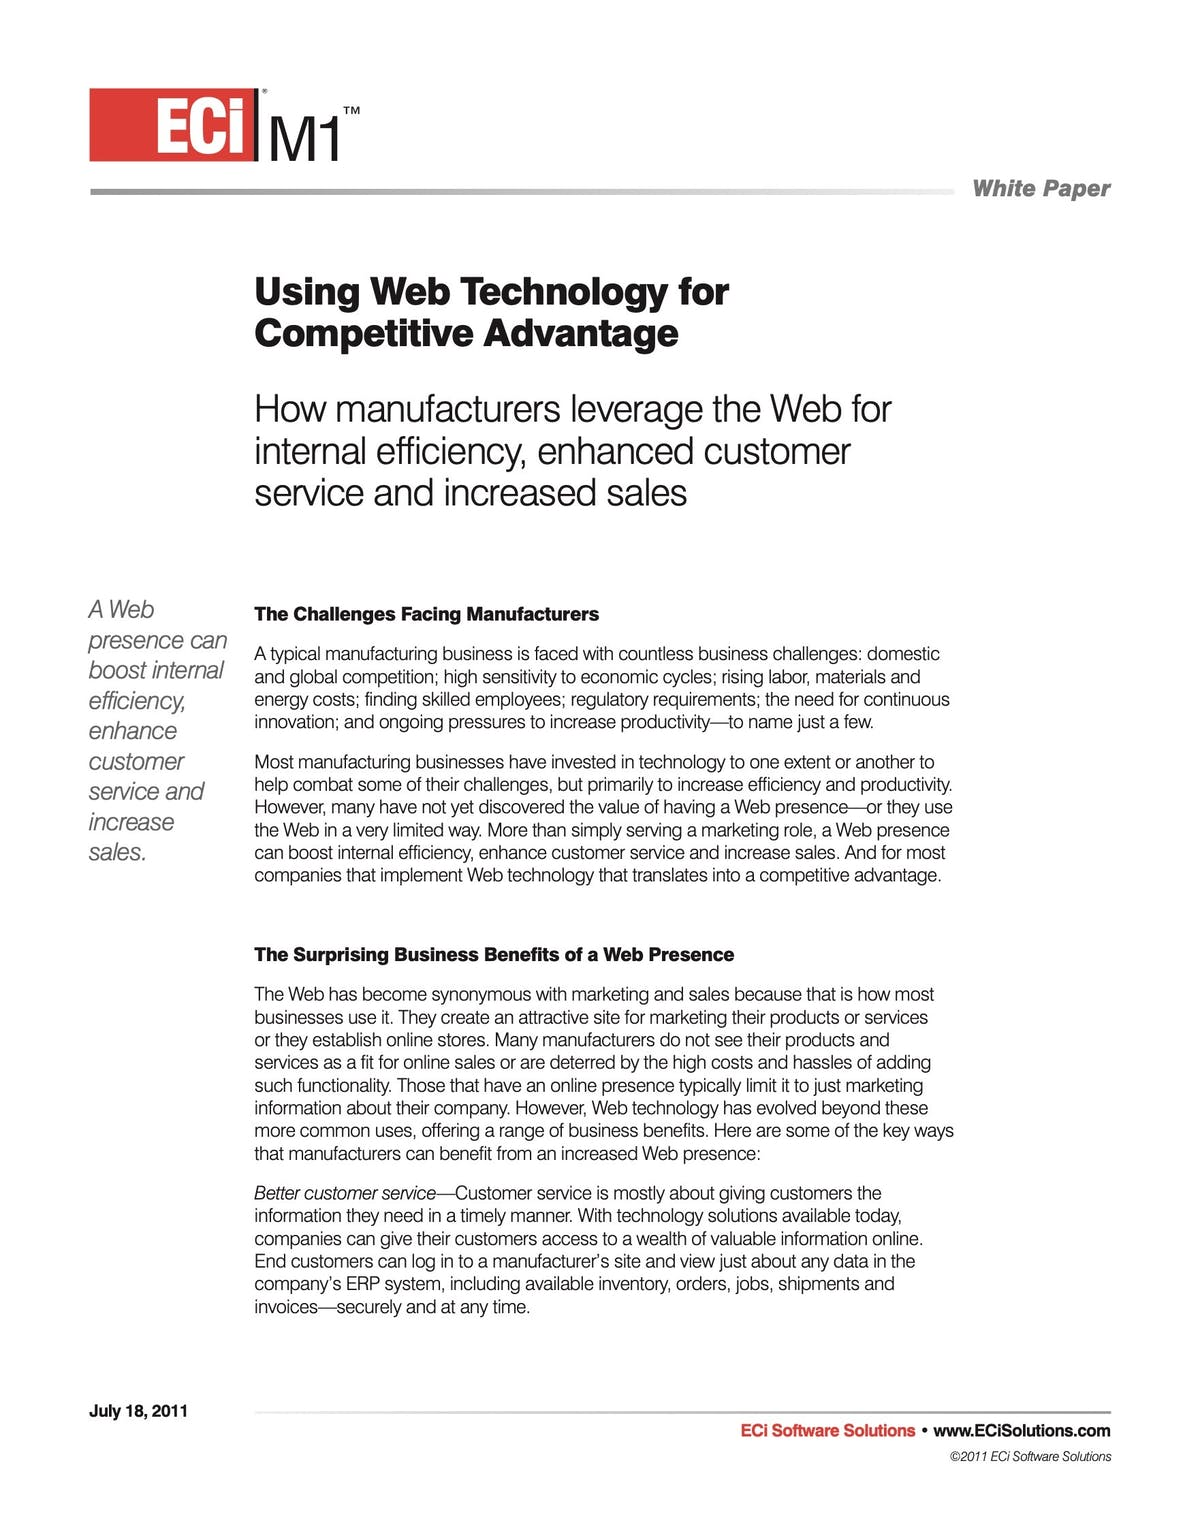 ECi M1 White Paper - Using Web Technology for Competitive Advantage